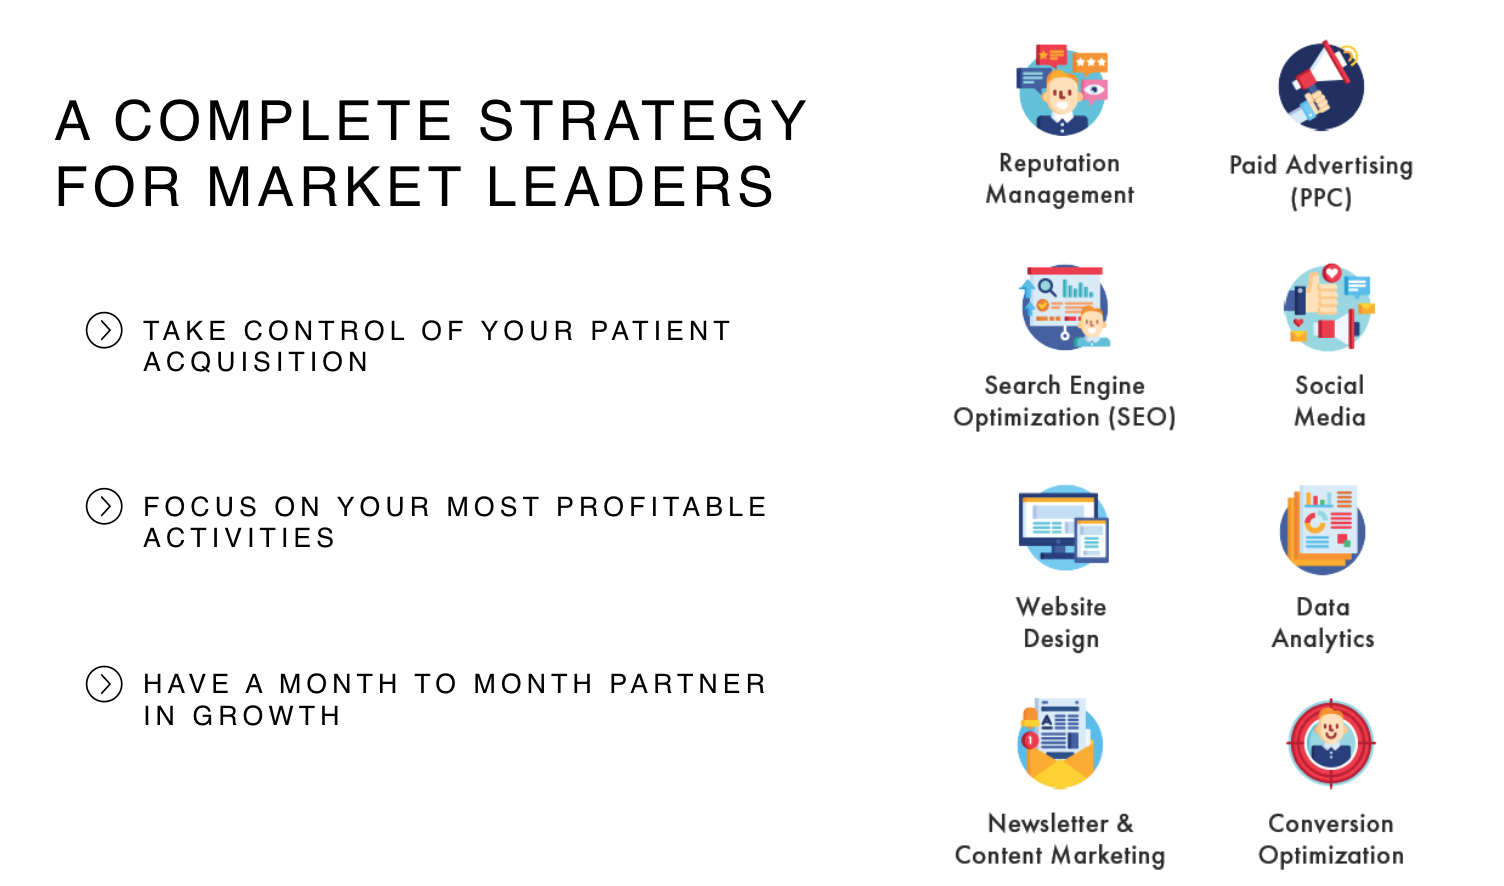 A Complete Strategy for Market Leaders - Take Control of Your Patient Acquisition, Focus on Your Most Profitable Activities, and Have a Month-toMonth Partner like Koda Digital to Grow Your Medical Practice